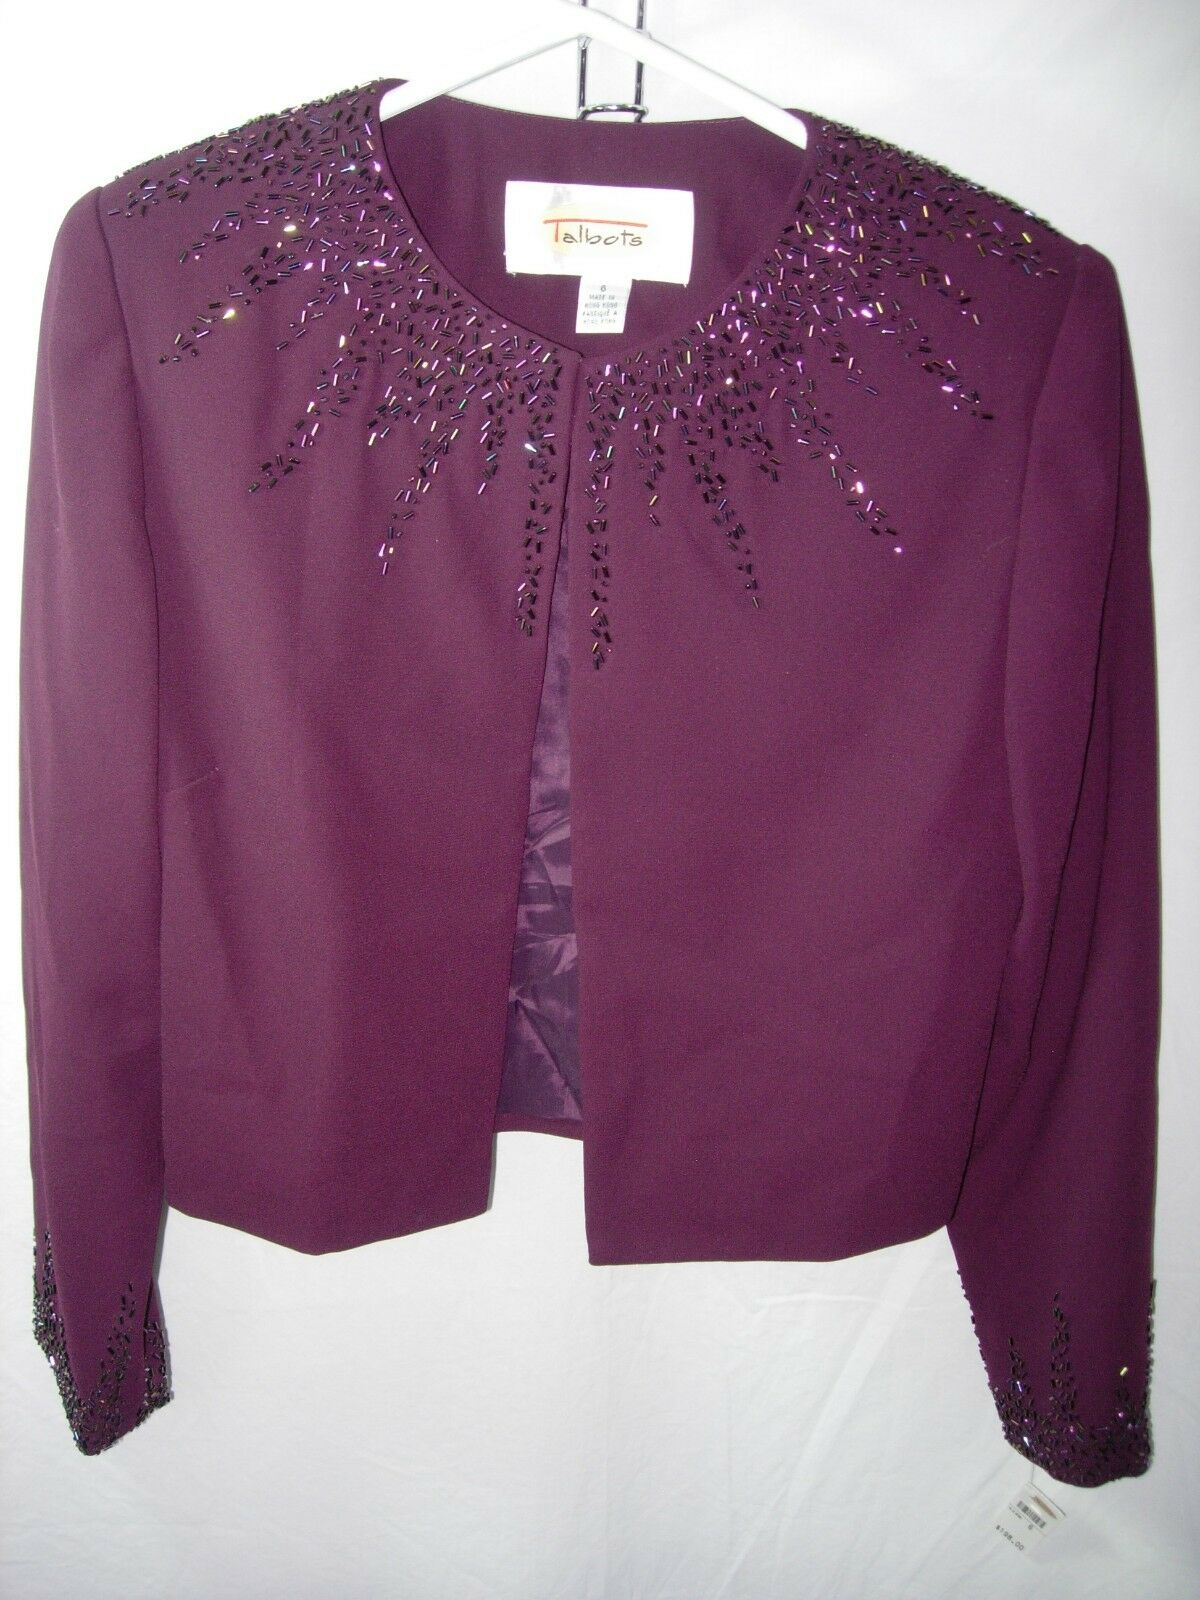 WOMENS NEW NWT PURPLE PLUM BEADED TALBOTS JACKET MOTHER OF THE BRIDE SIZE 6 38